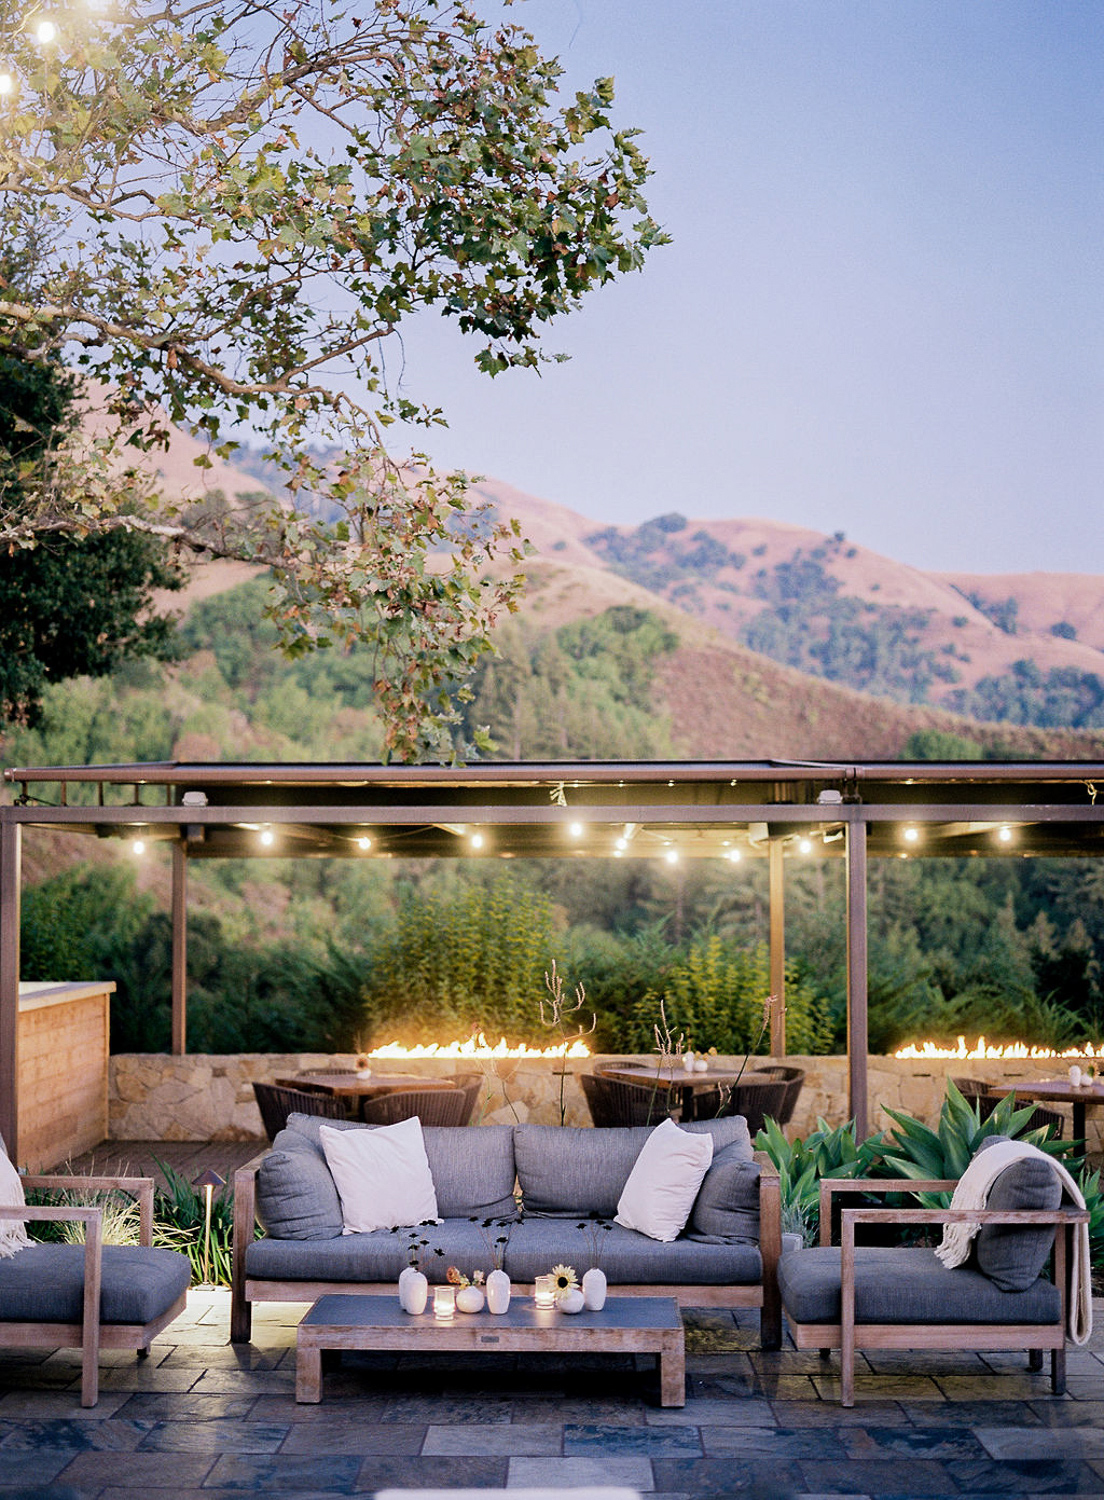 outdoor wedding lounge area with gray couches and fire